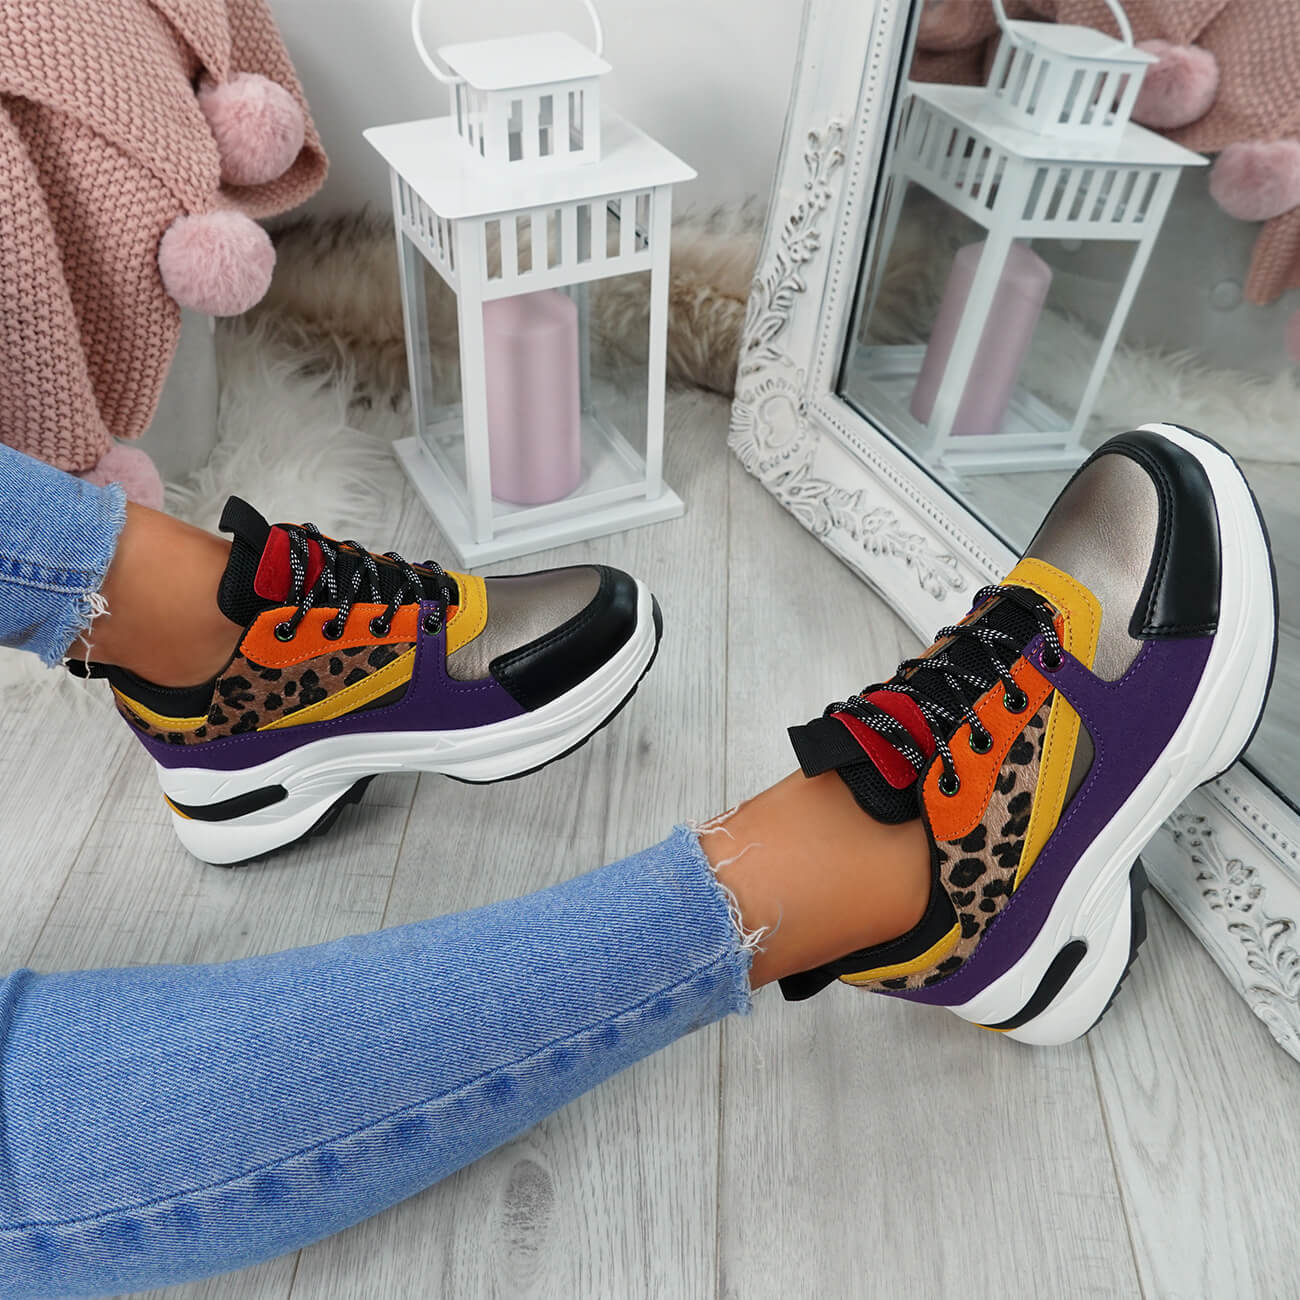 WOMENS-LADIES-LACE-UP-CHUNKY-TRAINERS-SNAKE-CROC-PATTERN-GLITTER-SHOES-SNEAKERS thumbnail 17